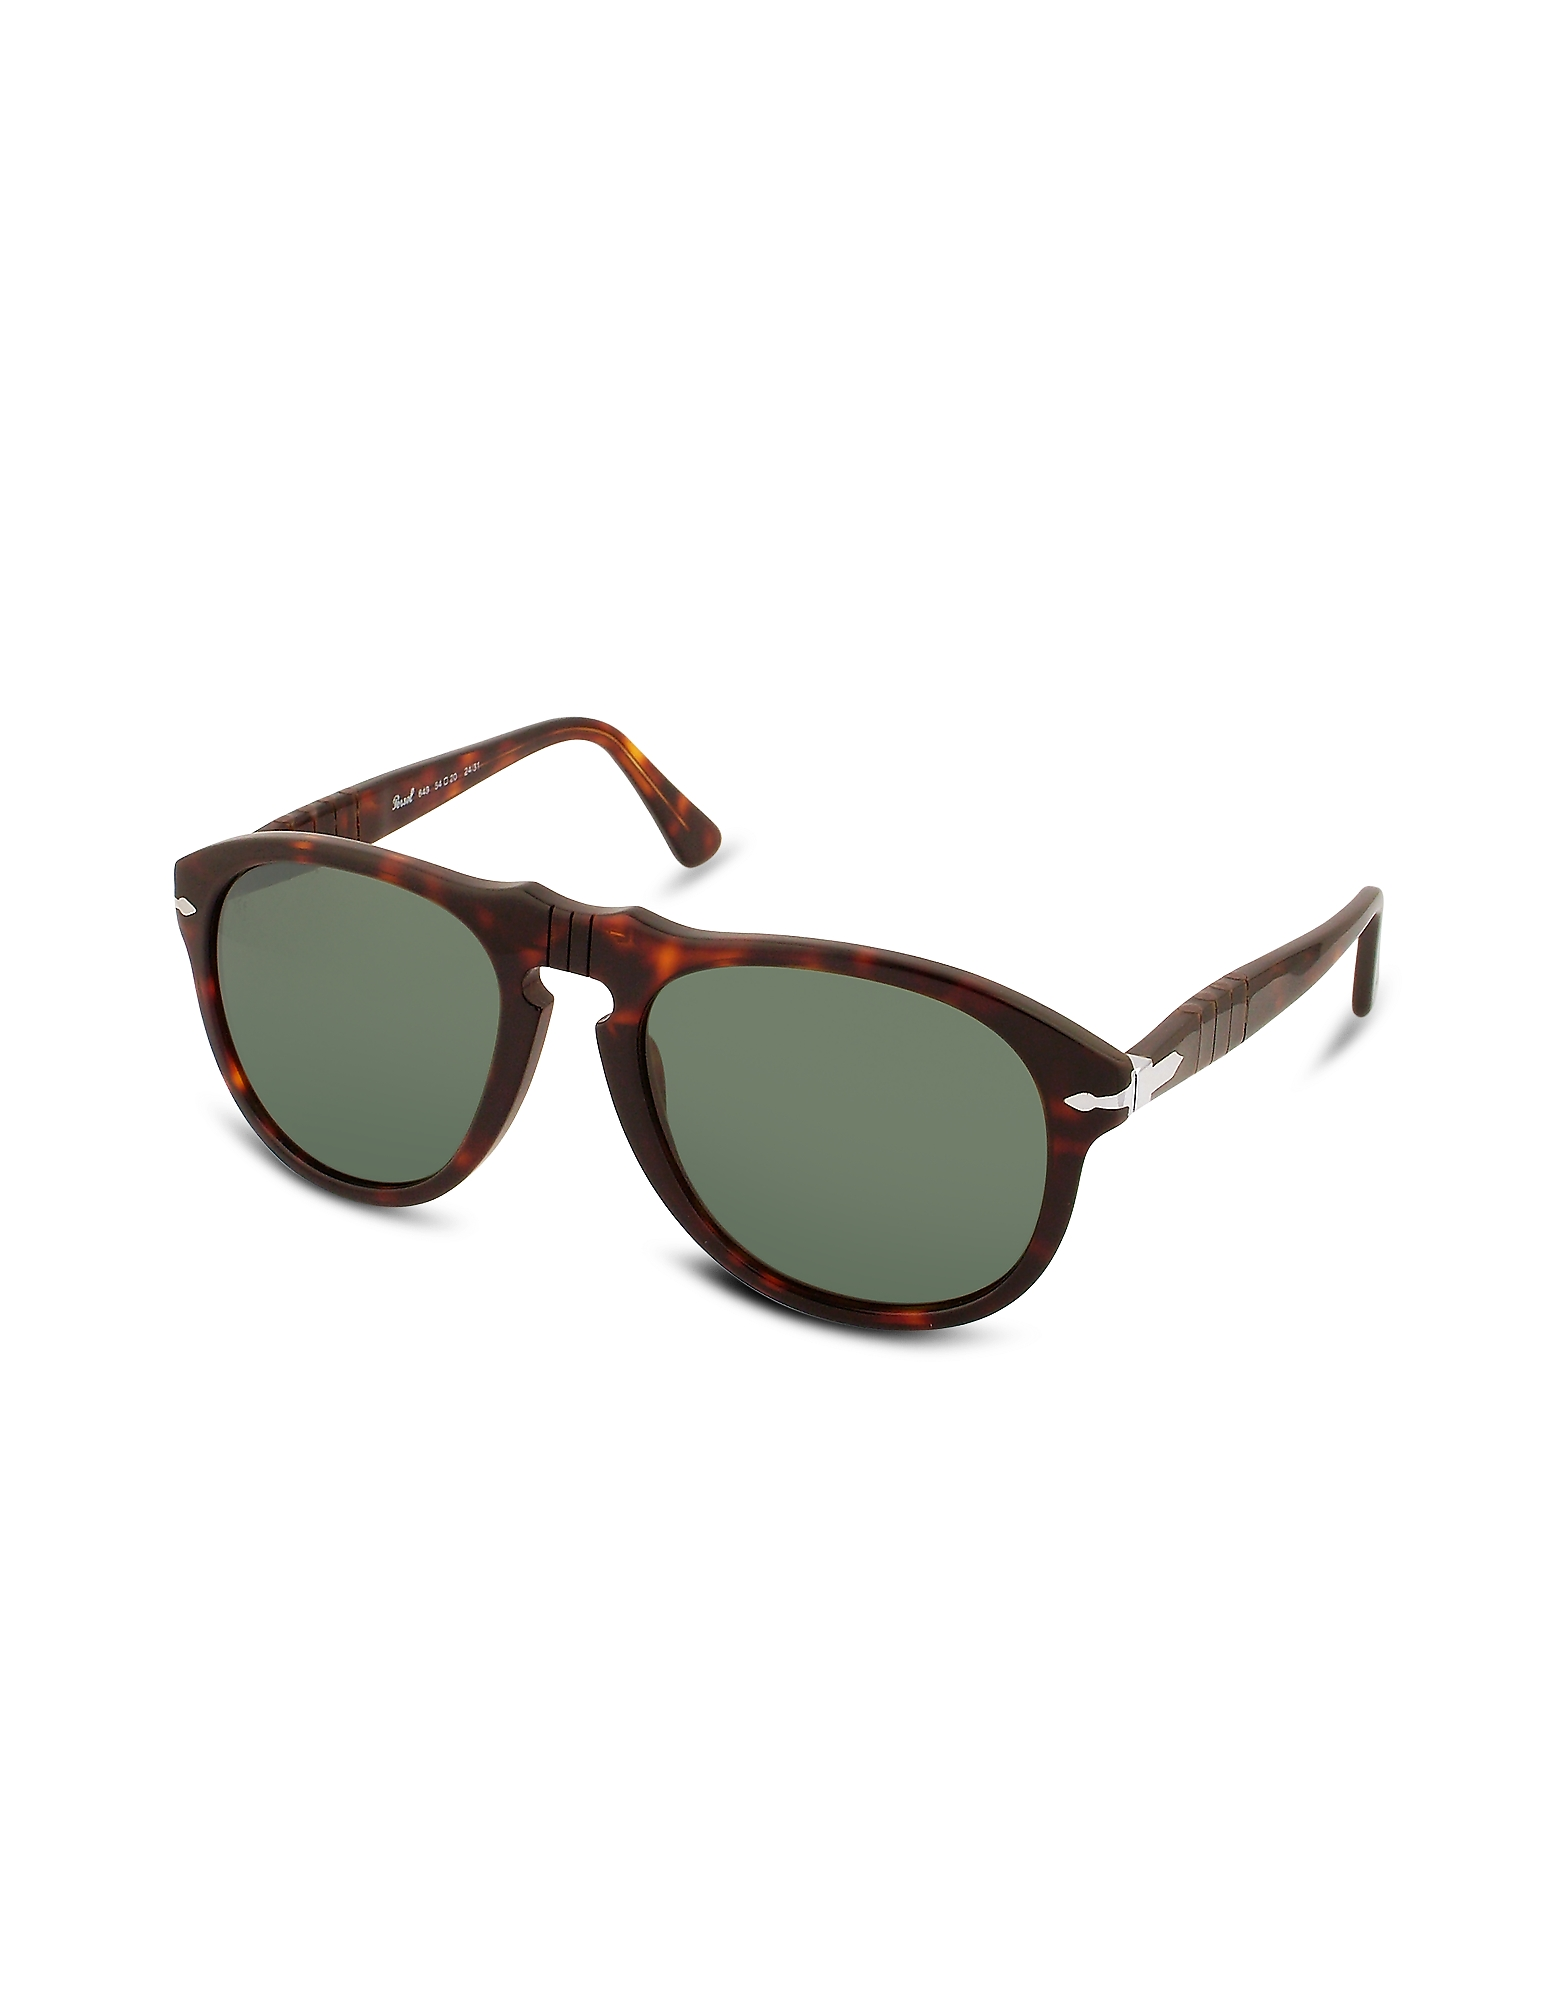 Persol Sunglasses, Arrow Signature Aviator Plastic Sunglasses